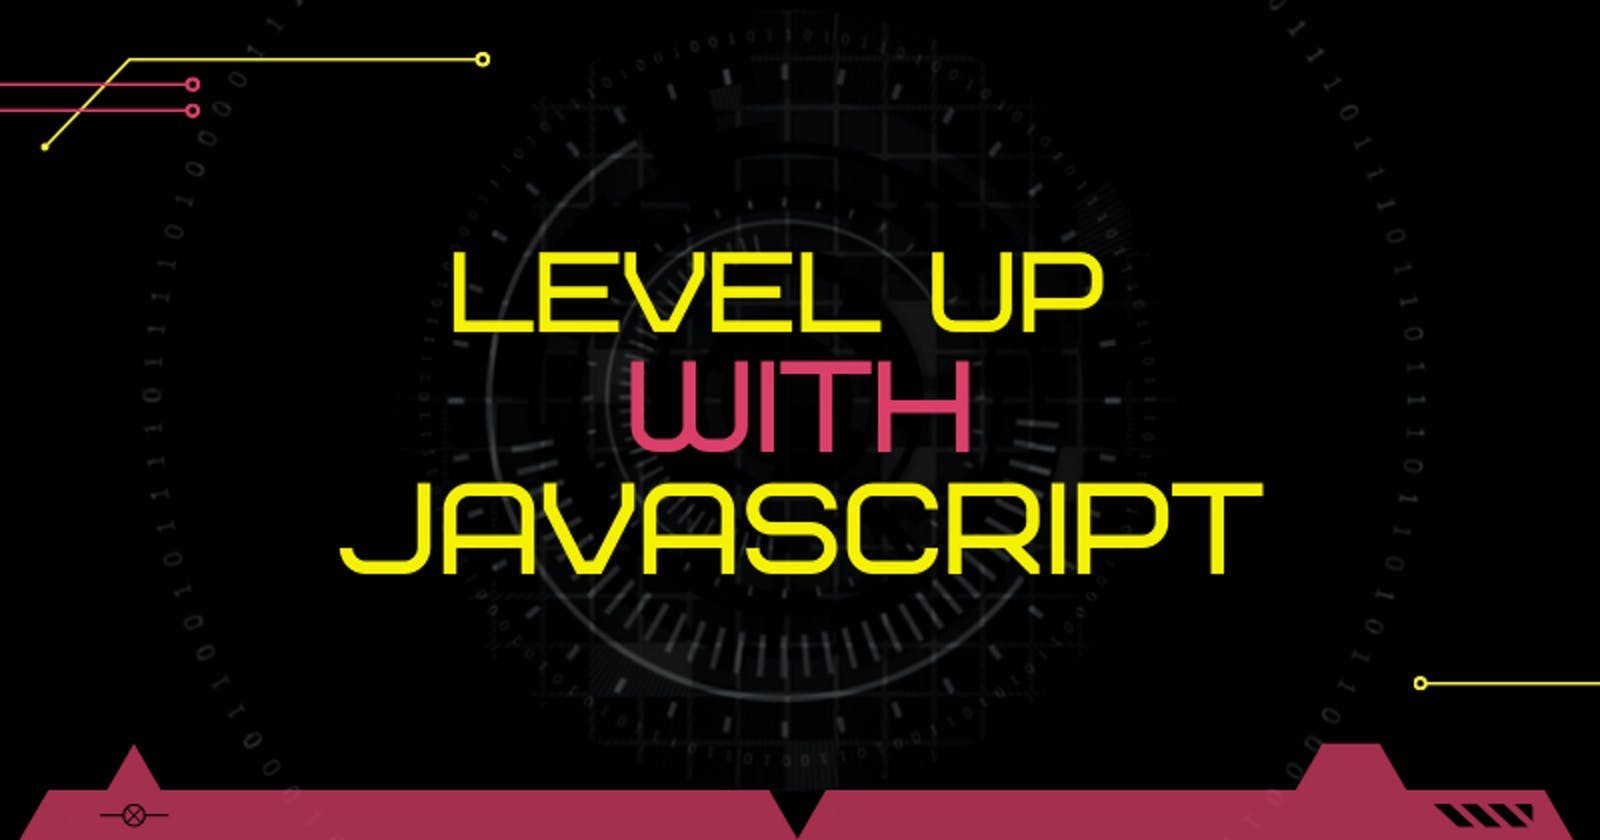 LEVEL UP with JavaScript! LVL 4